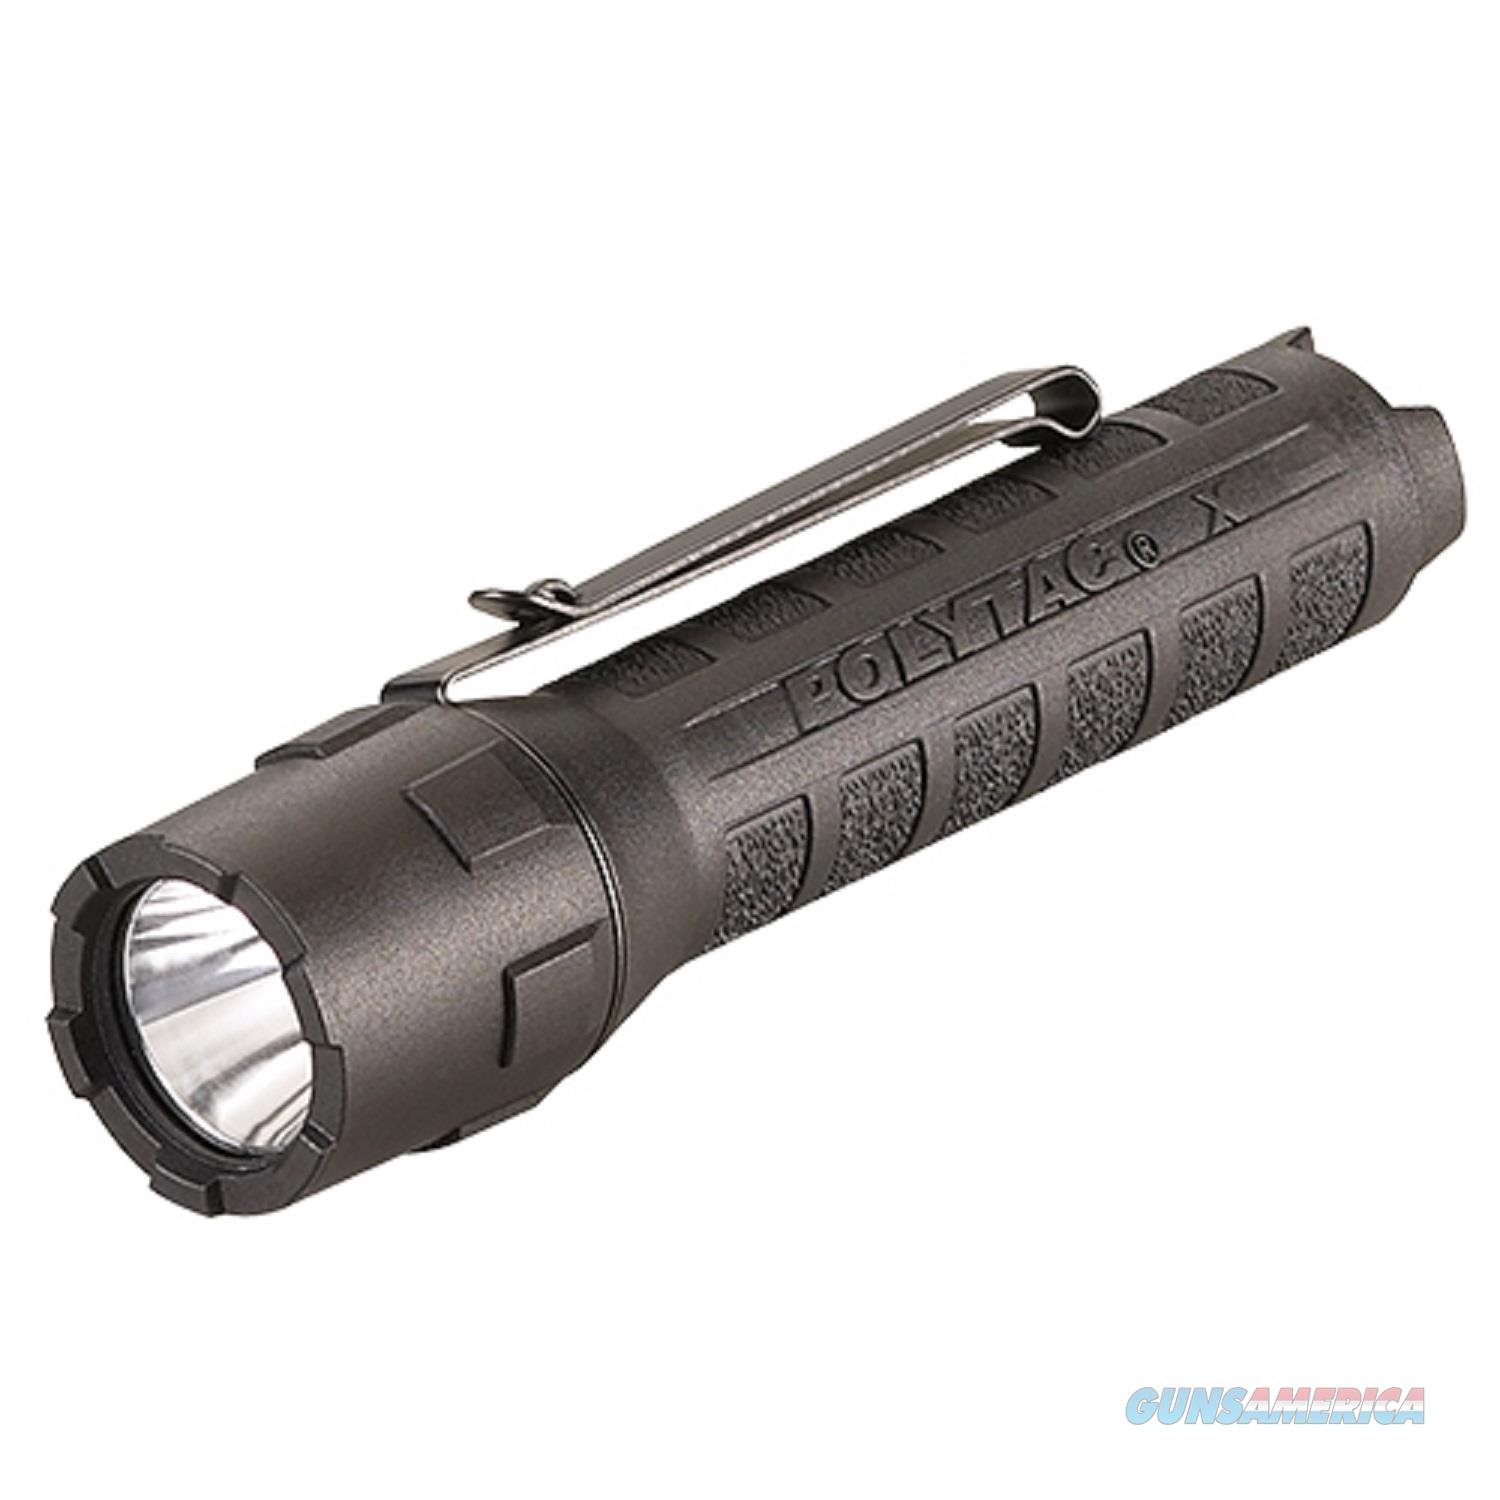 Streamlight Polytac X Usb Flashlight W/Usb Battery Black 88610  Non-Guns > Gun Parts > Misc > Rifles